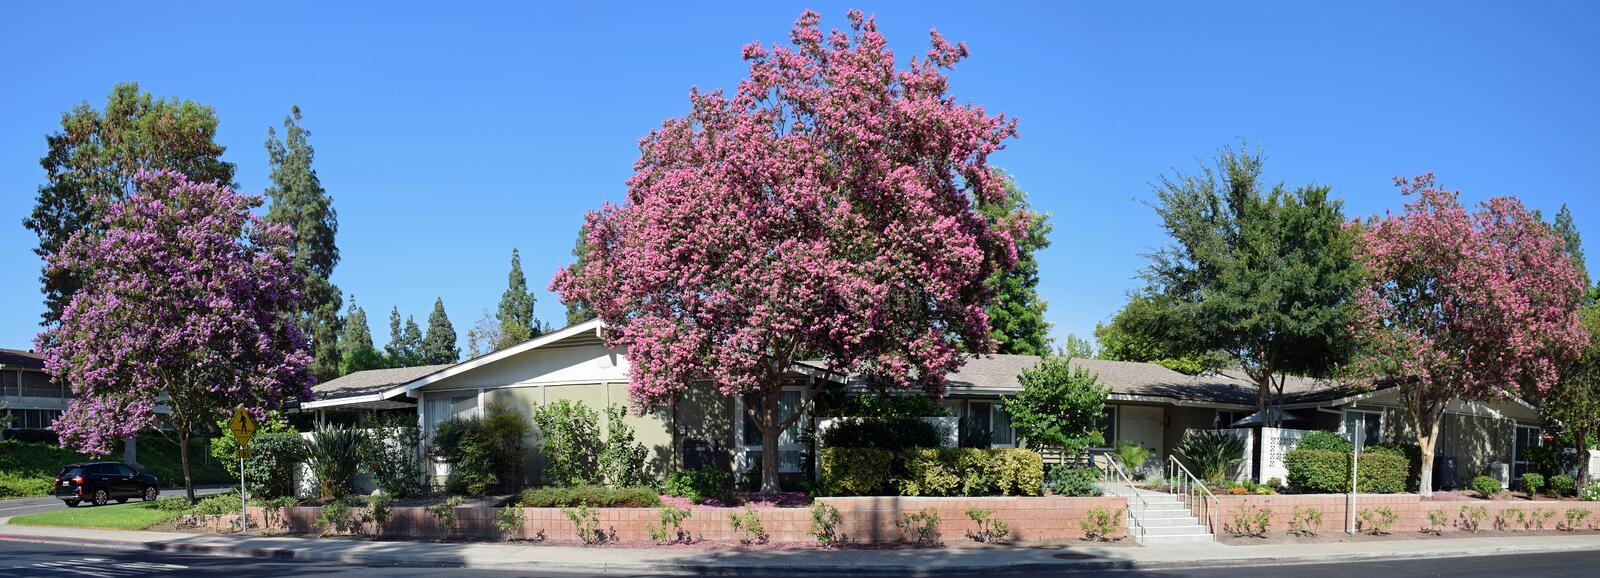 Lagerstroemia, commonly known as crape myrtle or crepe myrtle. Panorama image shows a trio of Lagerstroemia, commonly known as crape myrtle or crepe myrtle ` royalty free stock photos